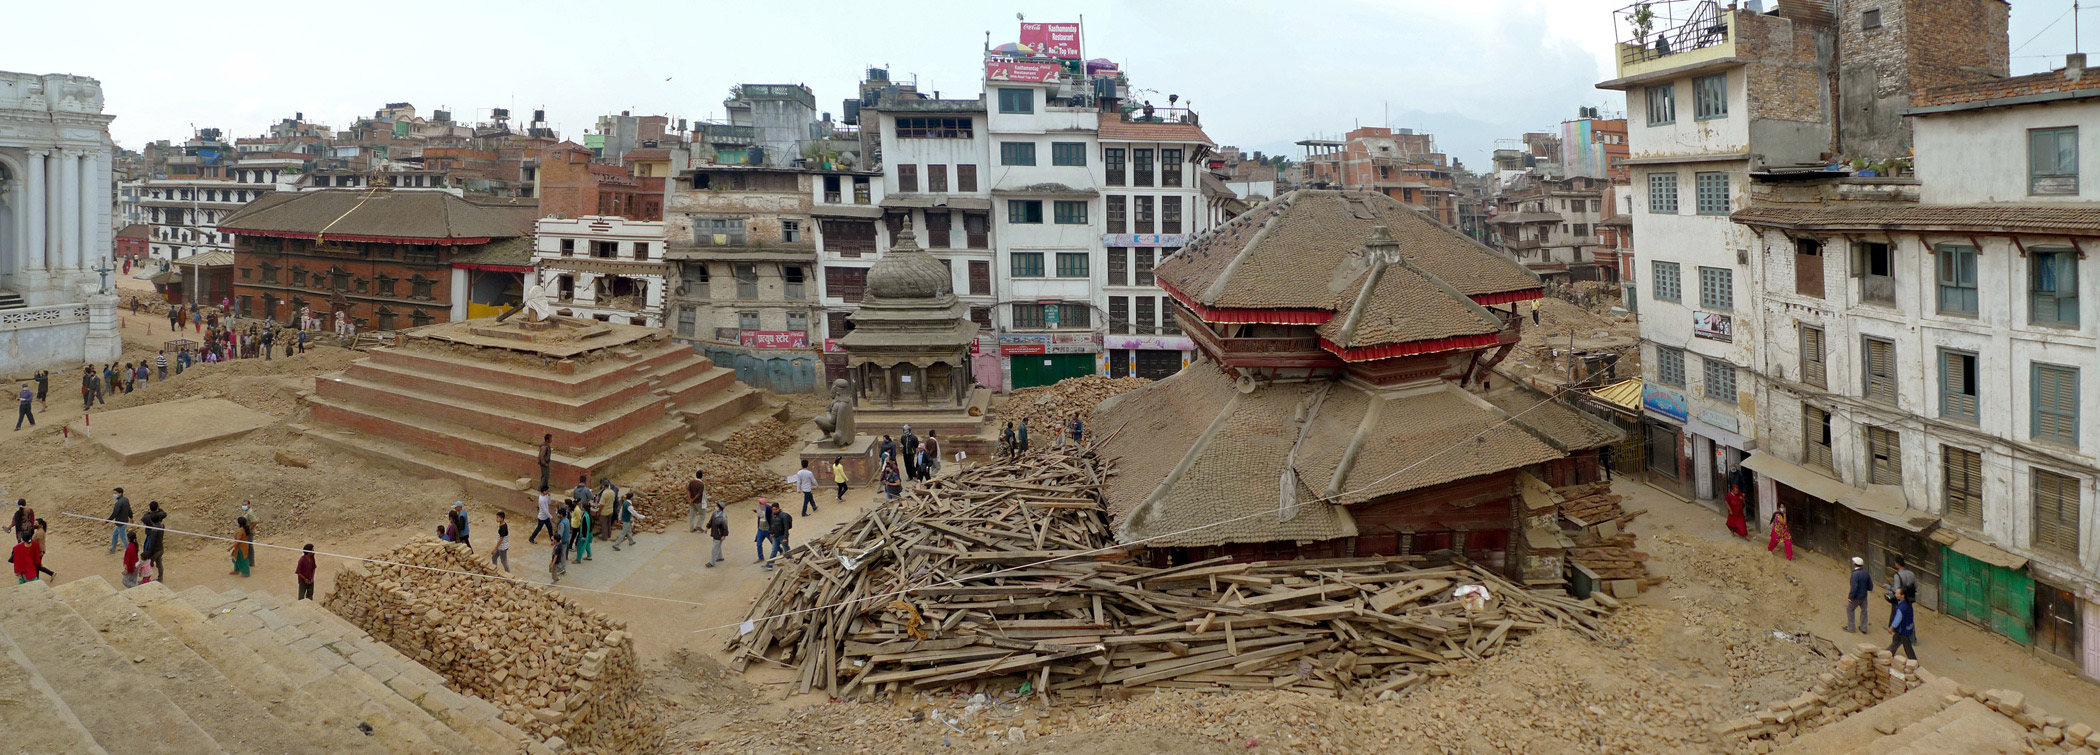 Nepal, Cultural                               Heritage Sites of Nepal: In the aftermath of a major natural disaster, the reconstruction of the Cultural Heritage Sites of Nepal will help local communities overcome the devastation that they faced.